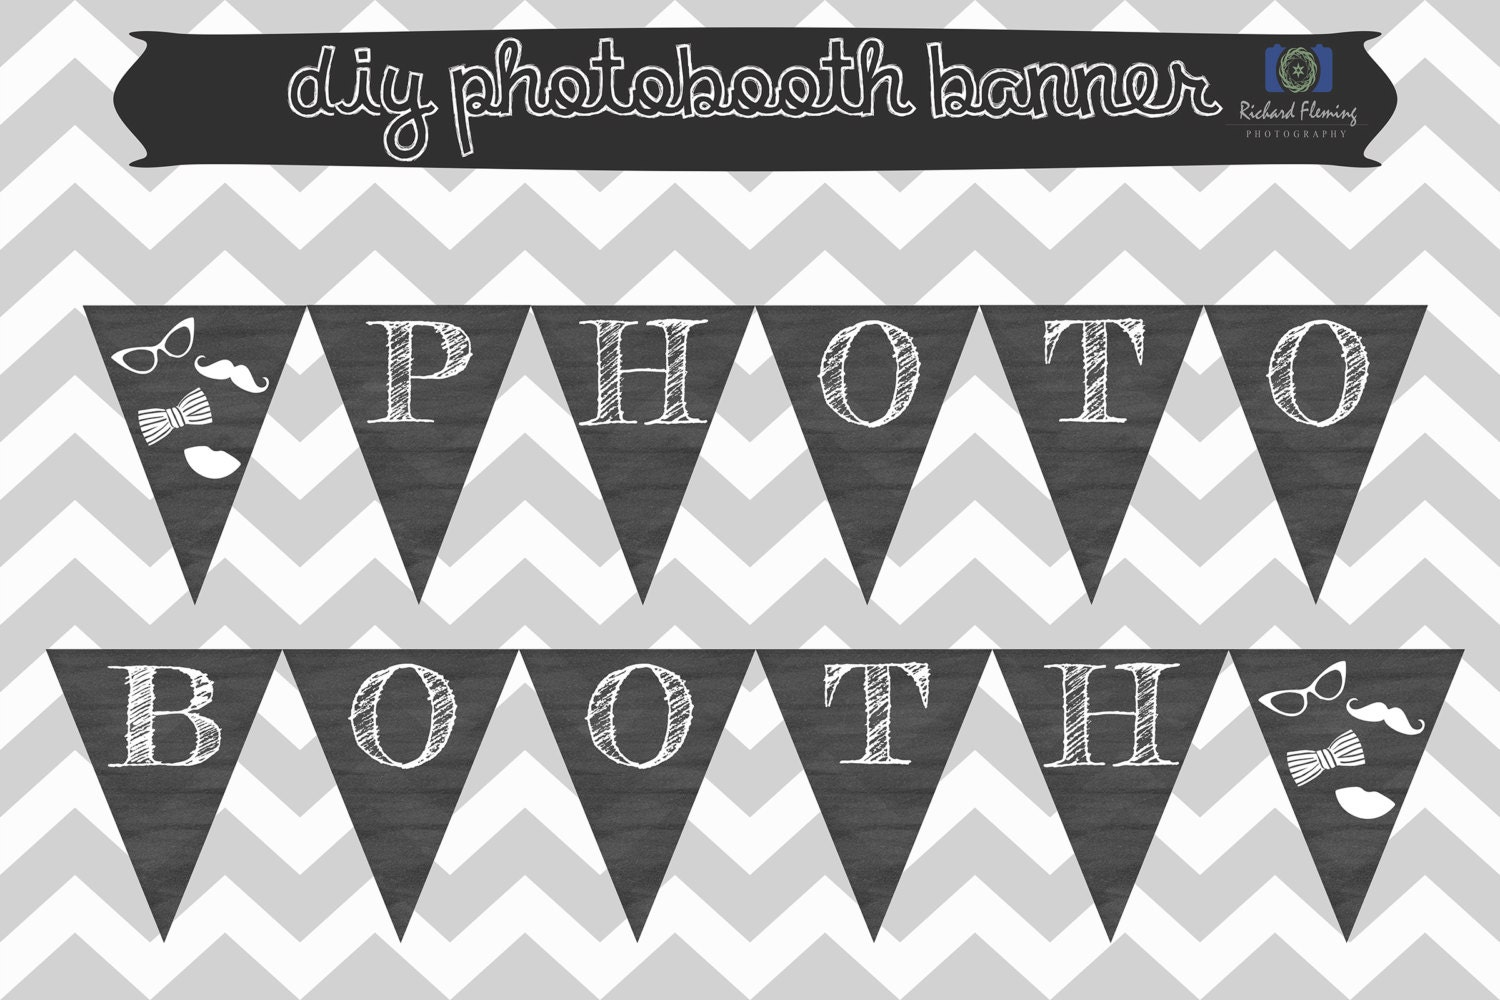 photobooth sign photo booth banner printable photobooth